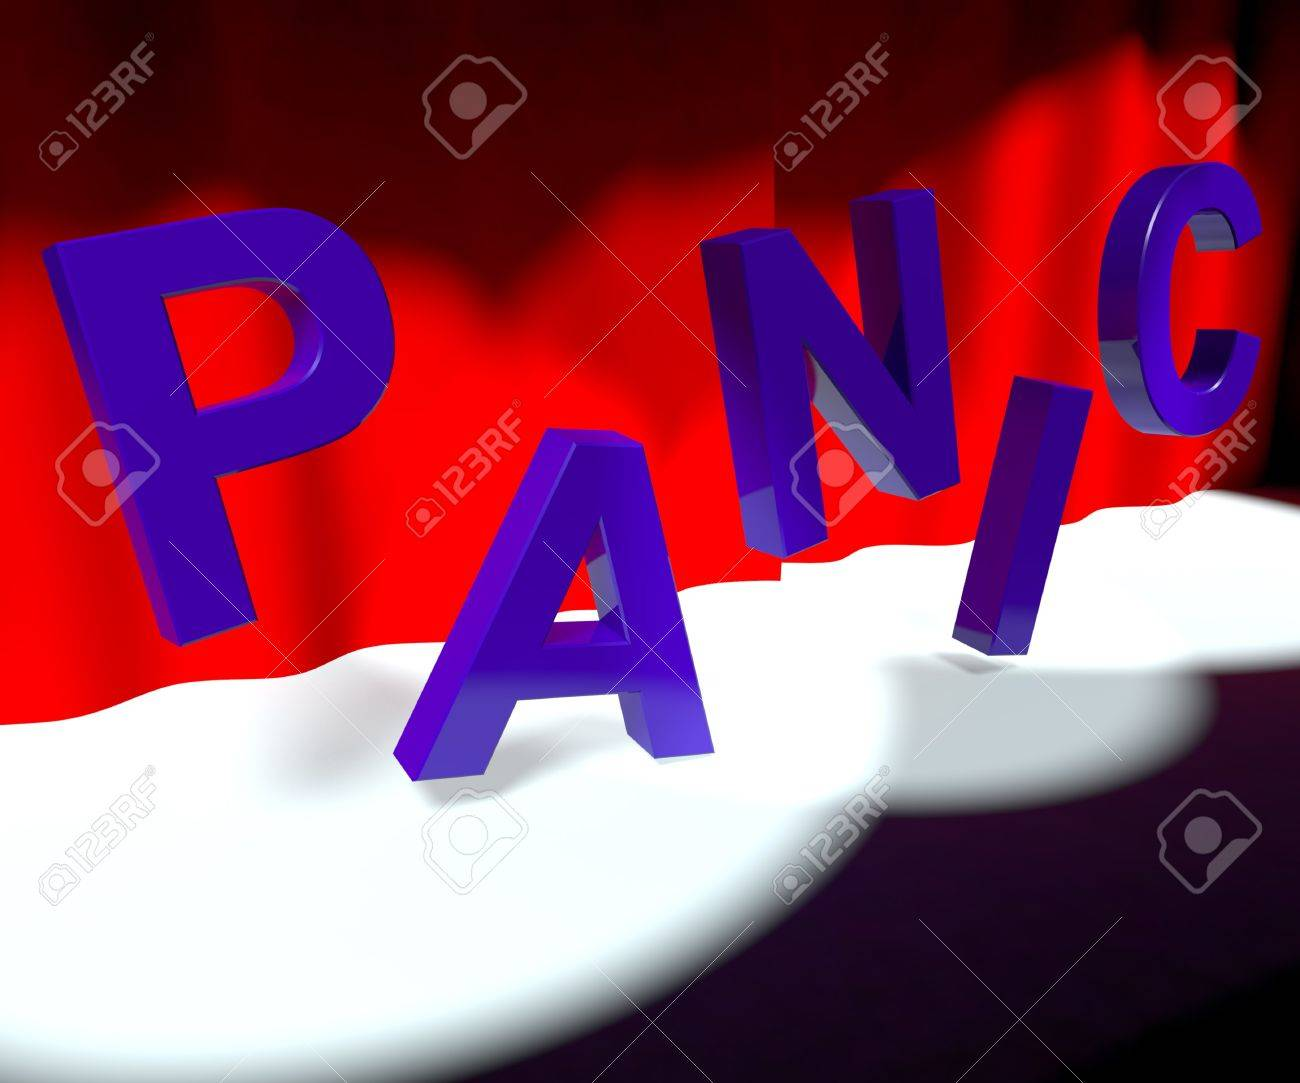 Panic Word On Stage As Symbol for Emergency Or Stress Stock Photo - 13482148